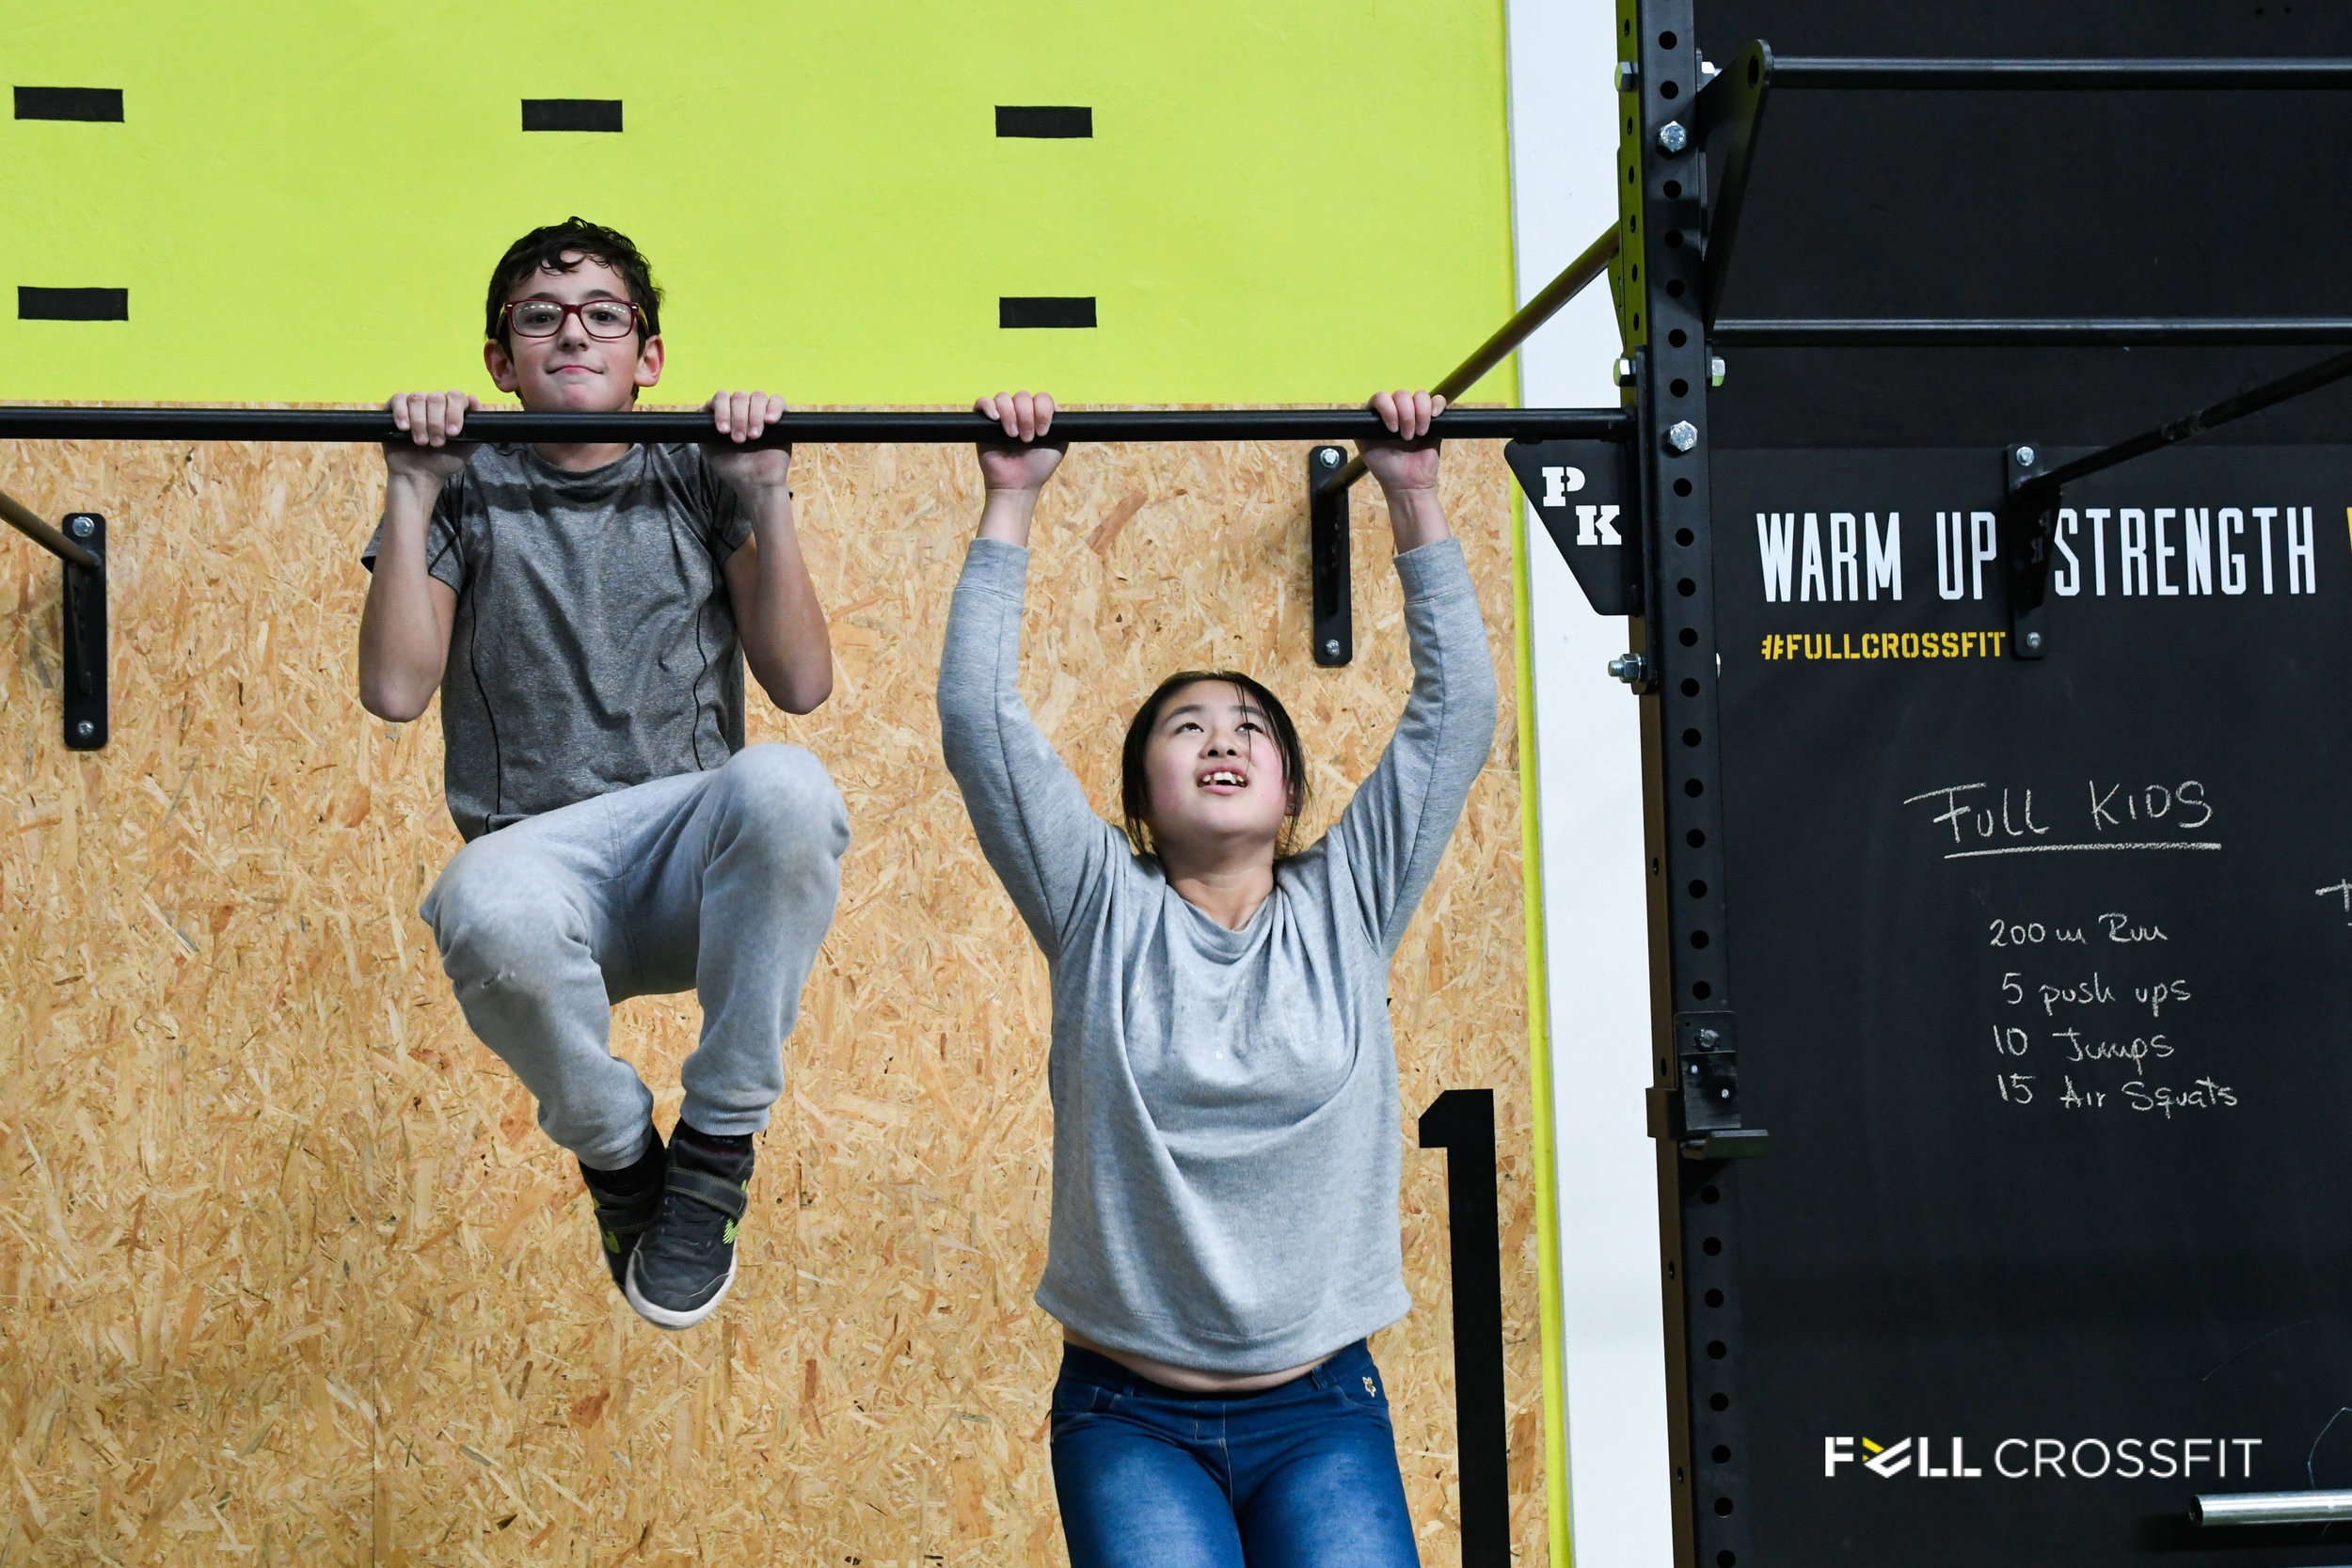 Full_Crossfit_kids-12.jpg